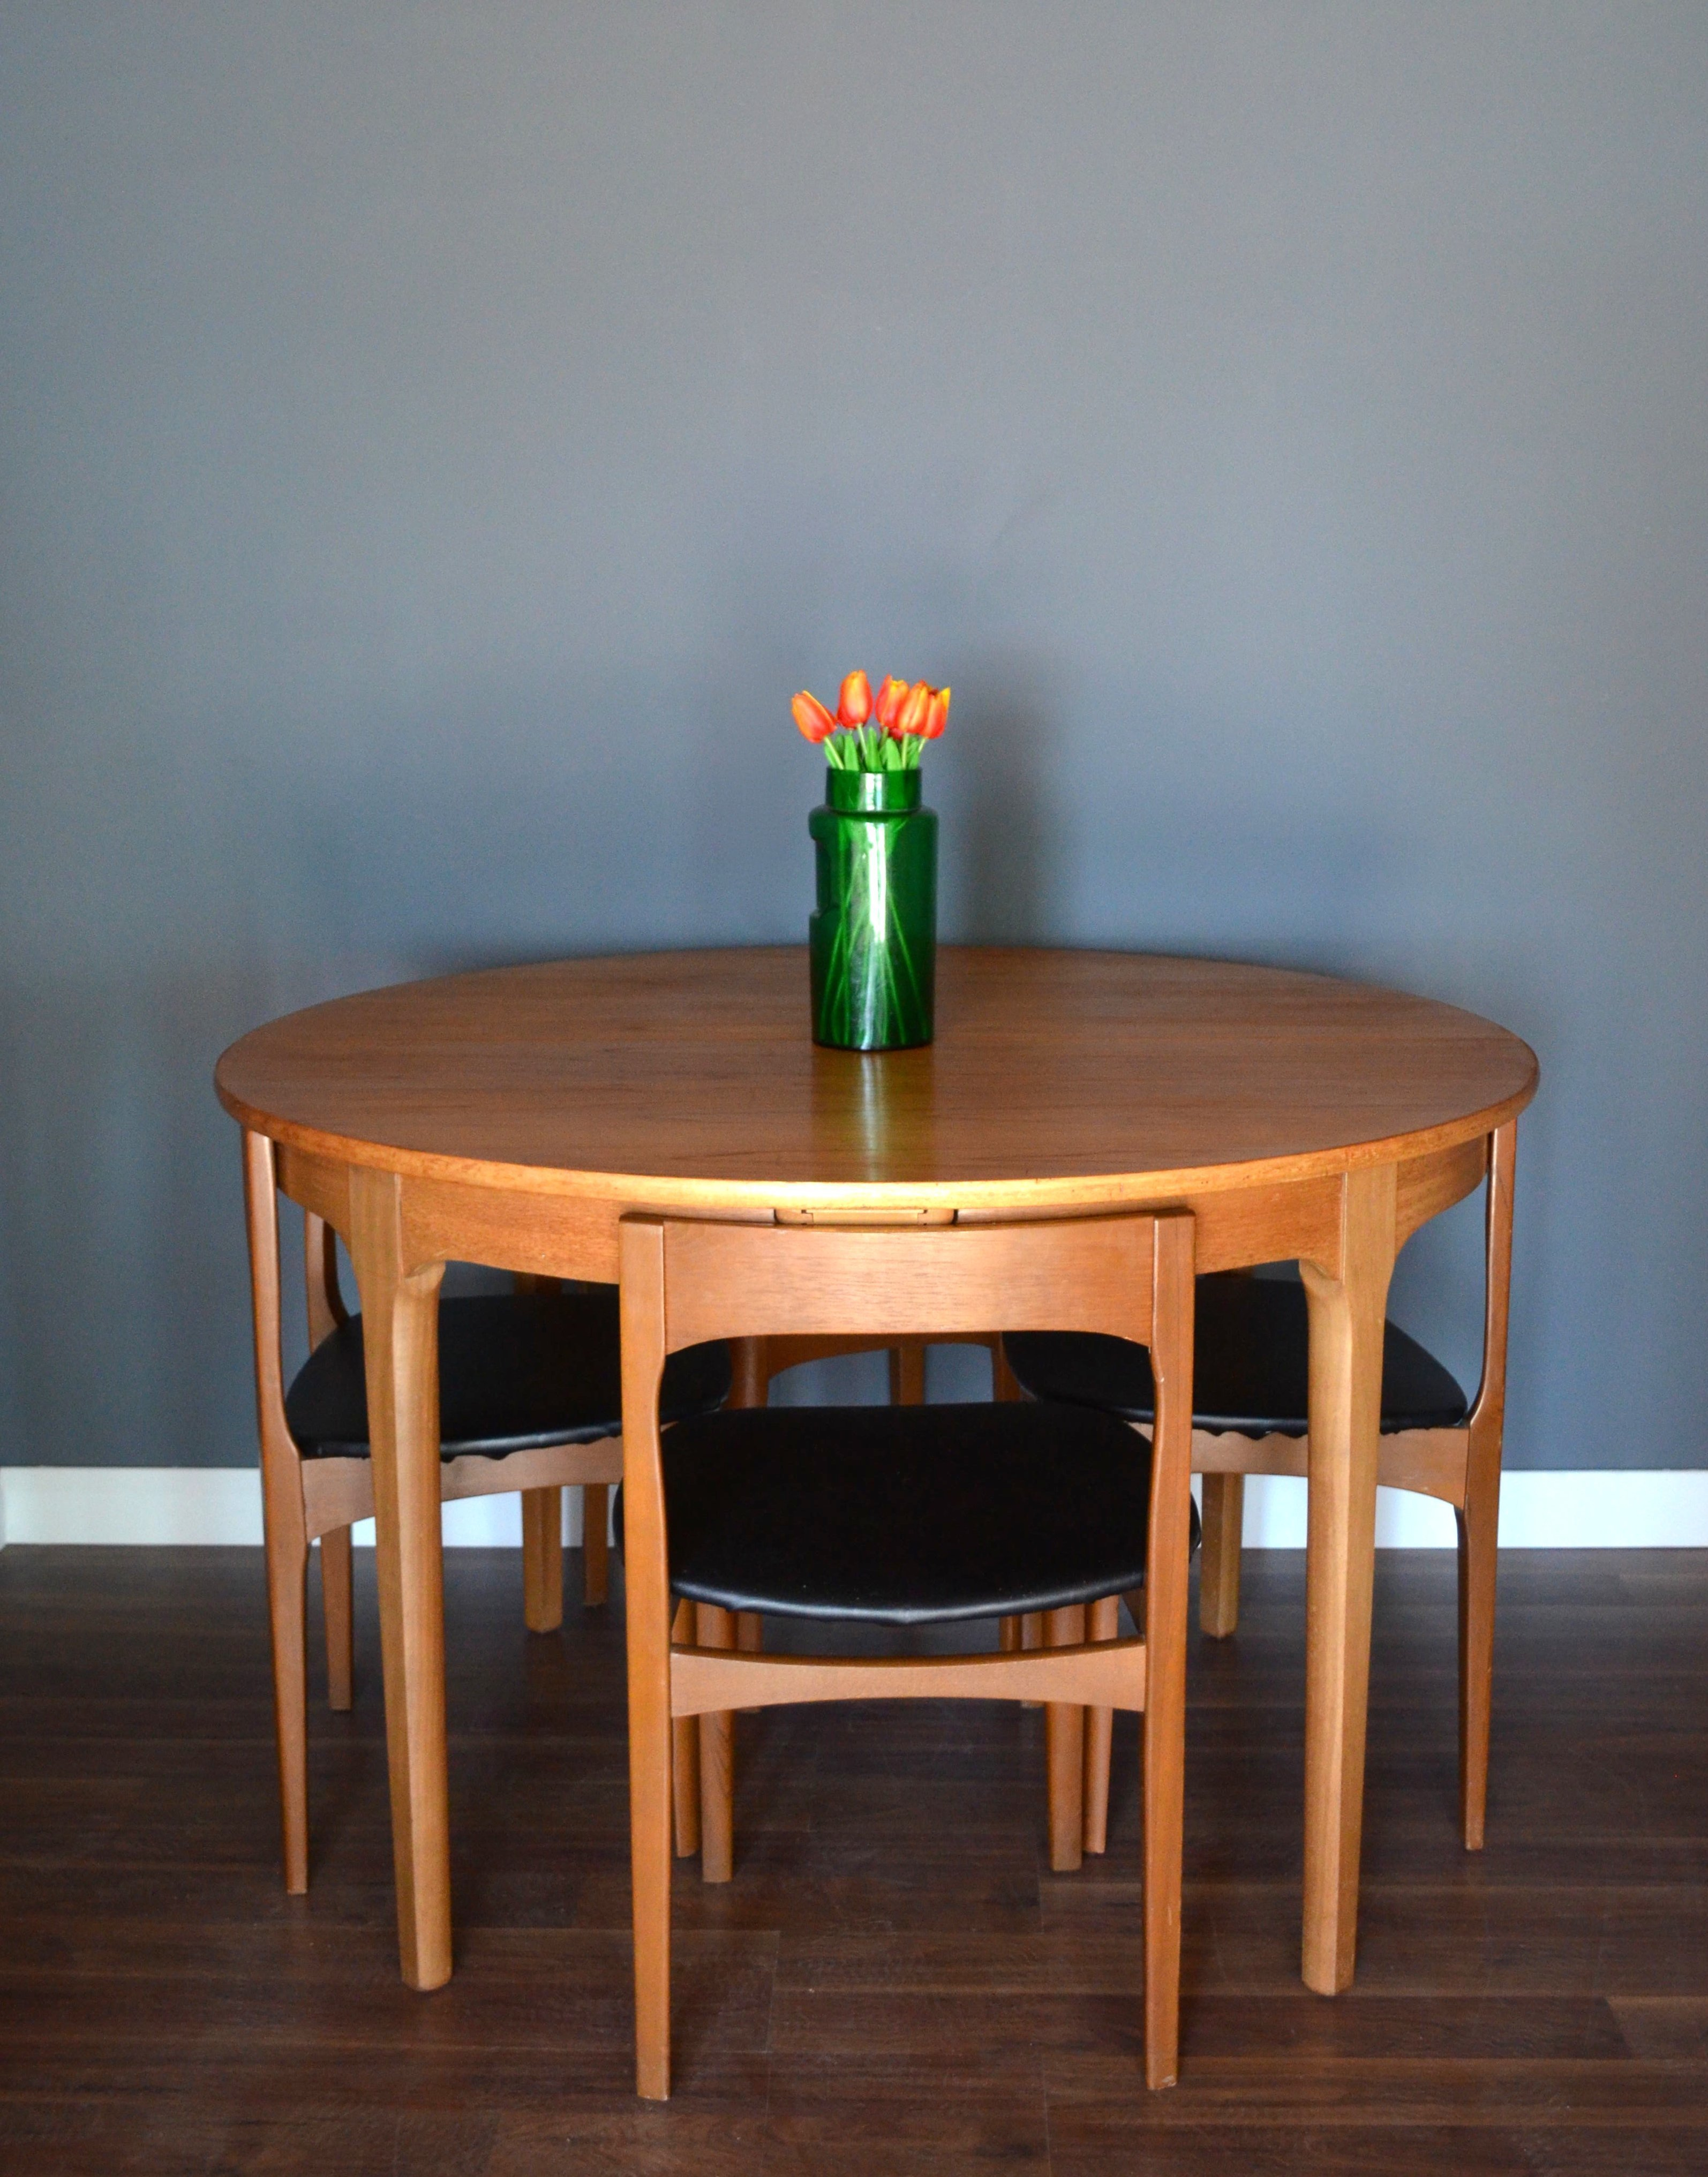 Vintage Nathan Danish Style Extending Round Teak Table And Chairs Delivery Modern Midcentury Retro Nathan Nathan Vinterior